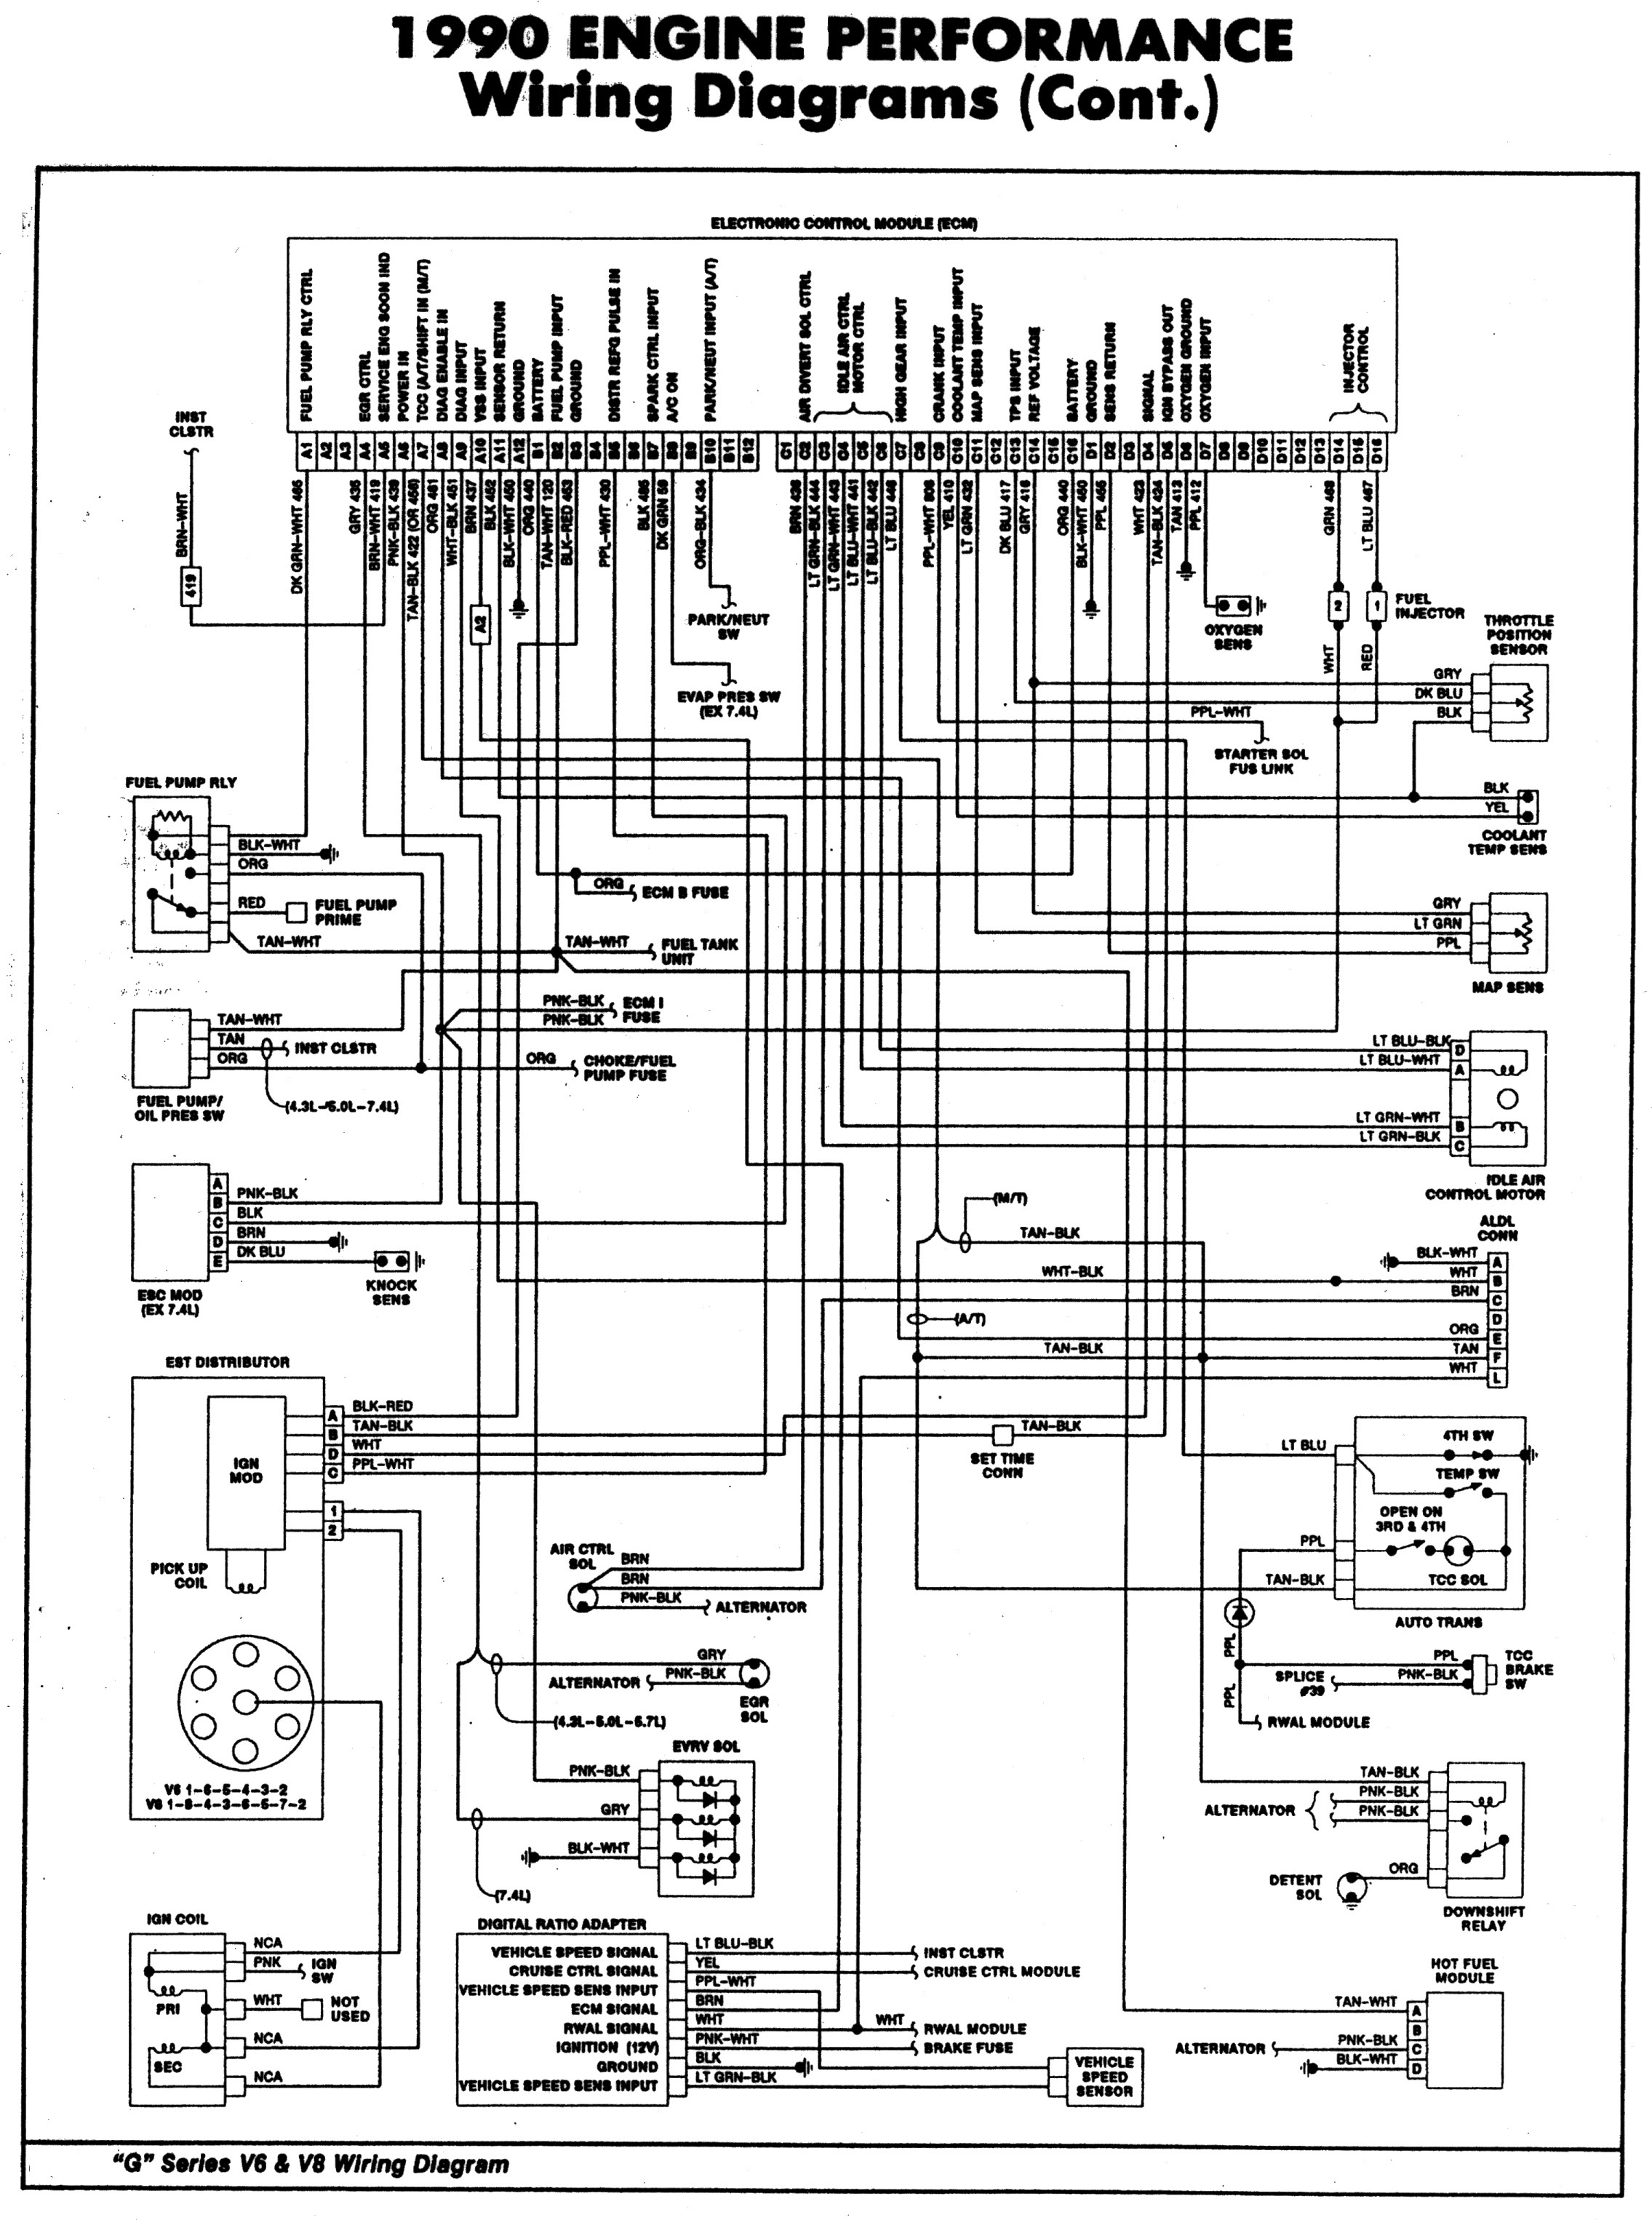 medium resolution of ignitiondiagram 1990 chevy suburban tbi 350 installation land 1990 suburban fuel pump wiring diagram 1990 suburban wiring diagram